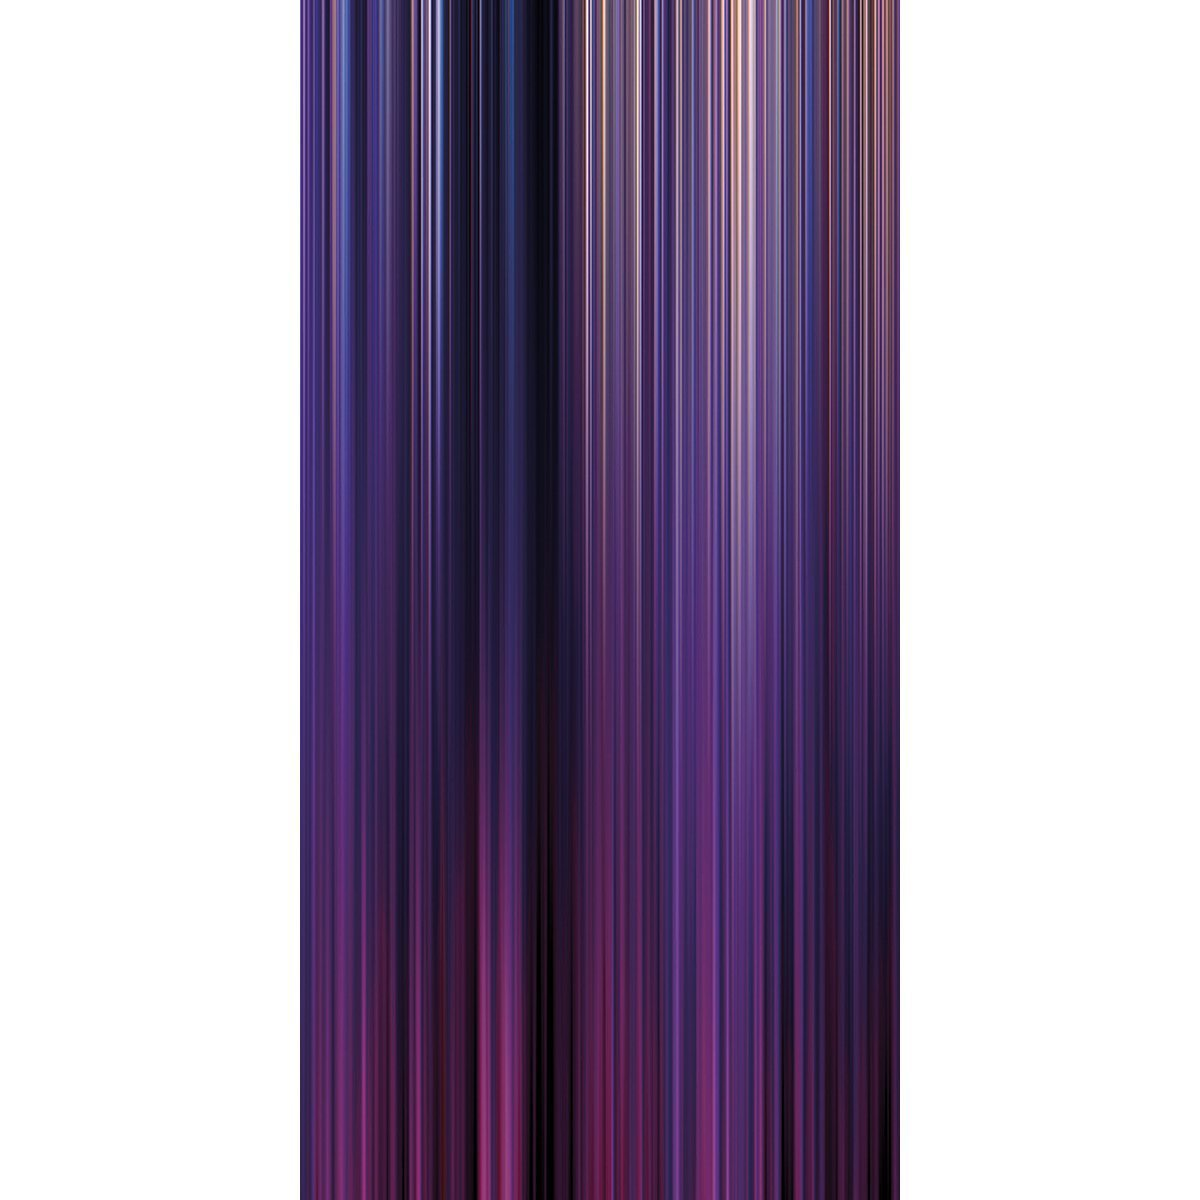 Wall Acoustics Panel 5 Muffle Abstract Mural - Kinetic Purple Panel 5